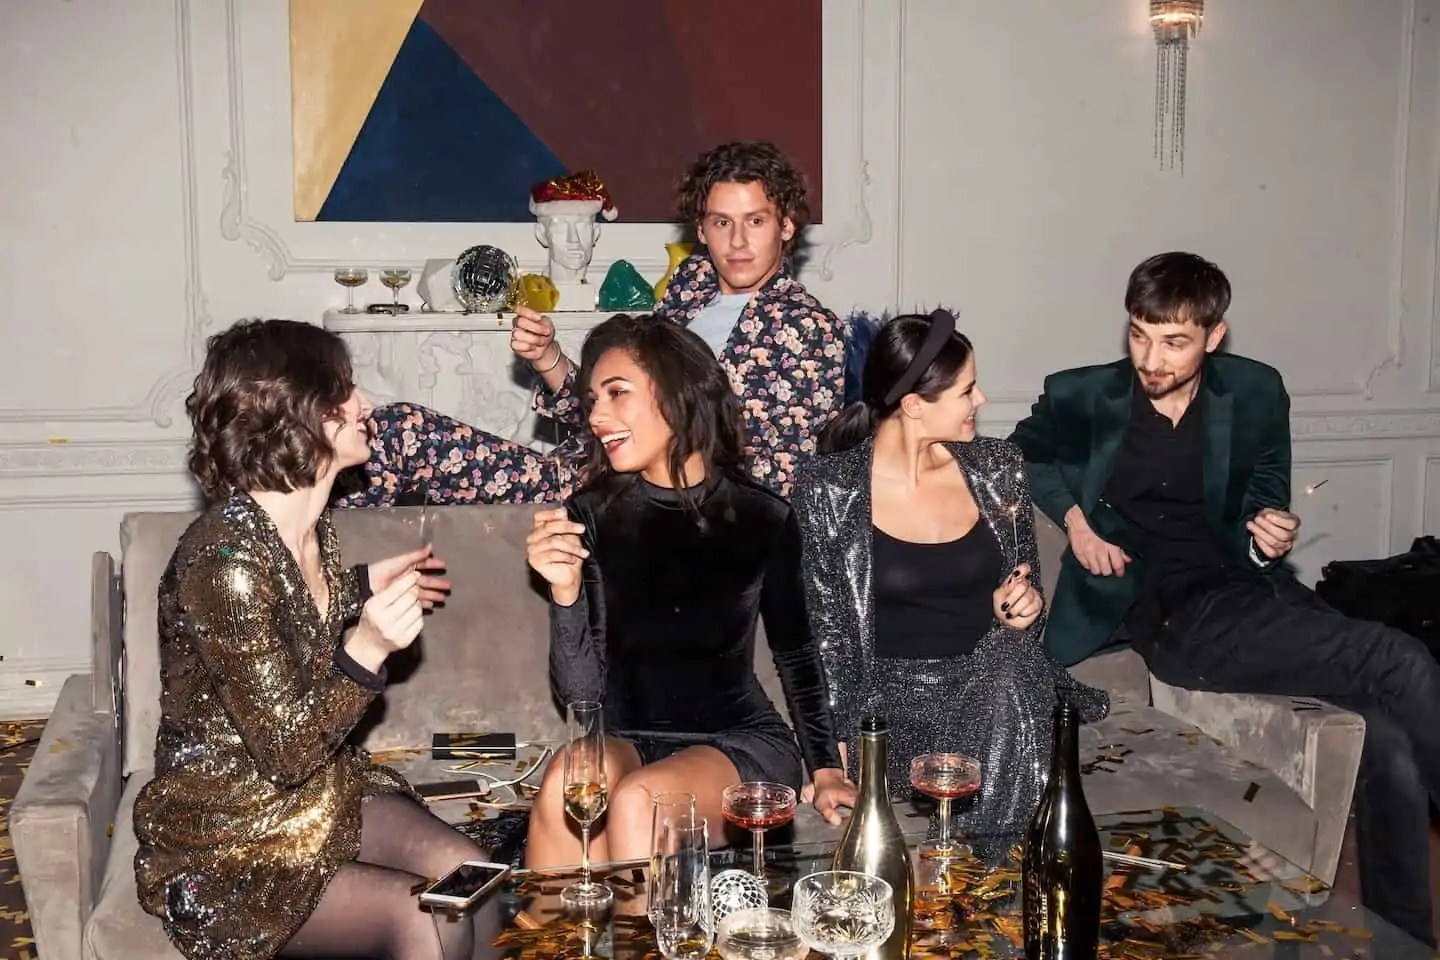 how to dress well for different settings with men and women at a disco party